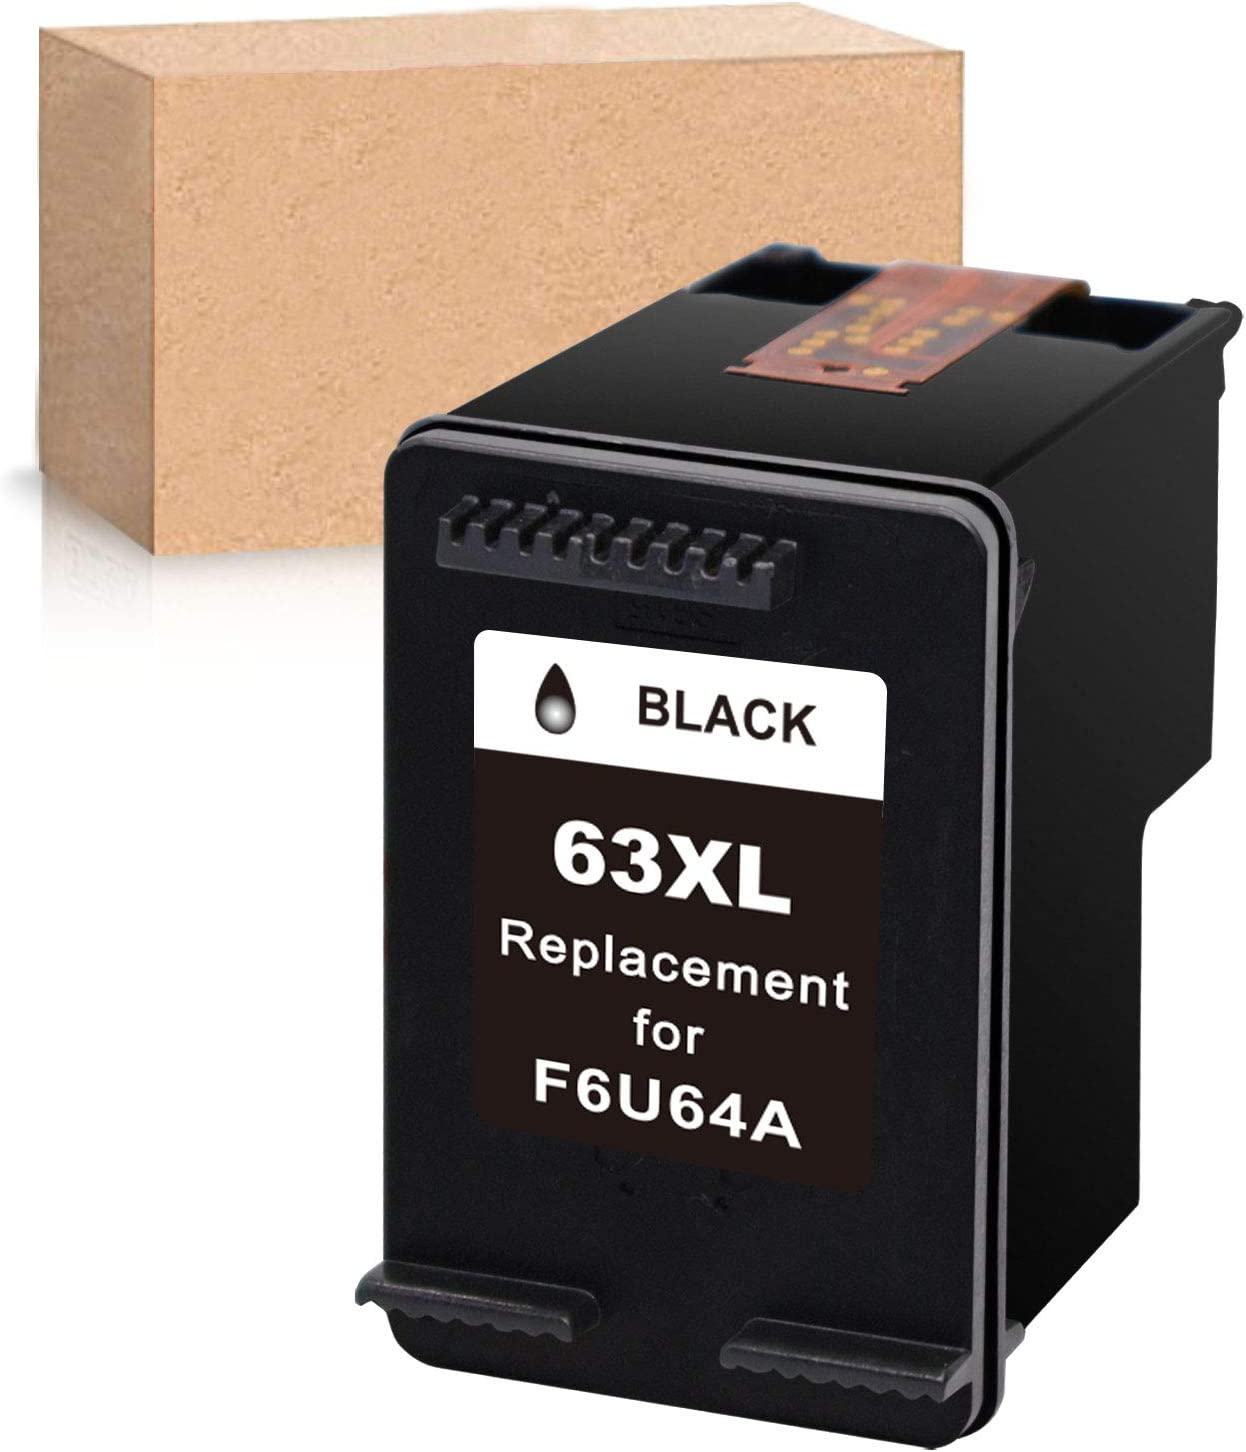 Economink Remanufactured Ink Cartridge Replacement for HP 63XL 63 XL Black Used in Envy 4520 3634 OfficeJet 3830 5252 4650 5258 4655 4652 5255 DeskJet 3636 1111 3630 1112 3637 3632 Printer (1-Pack)